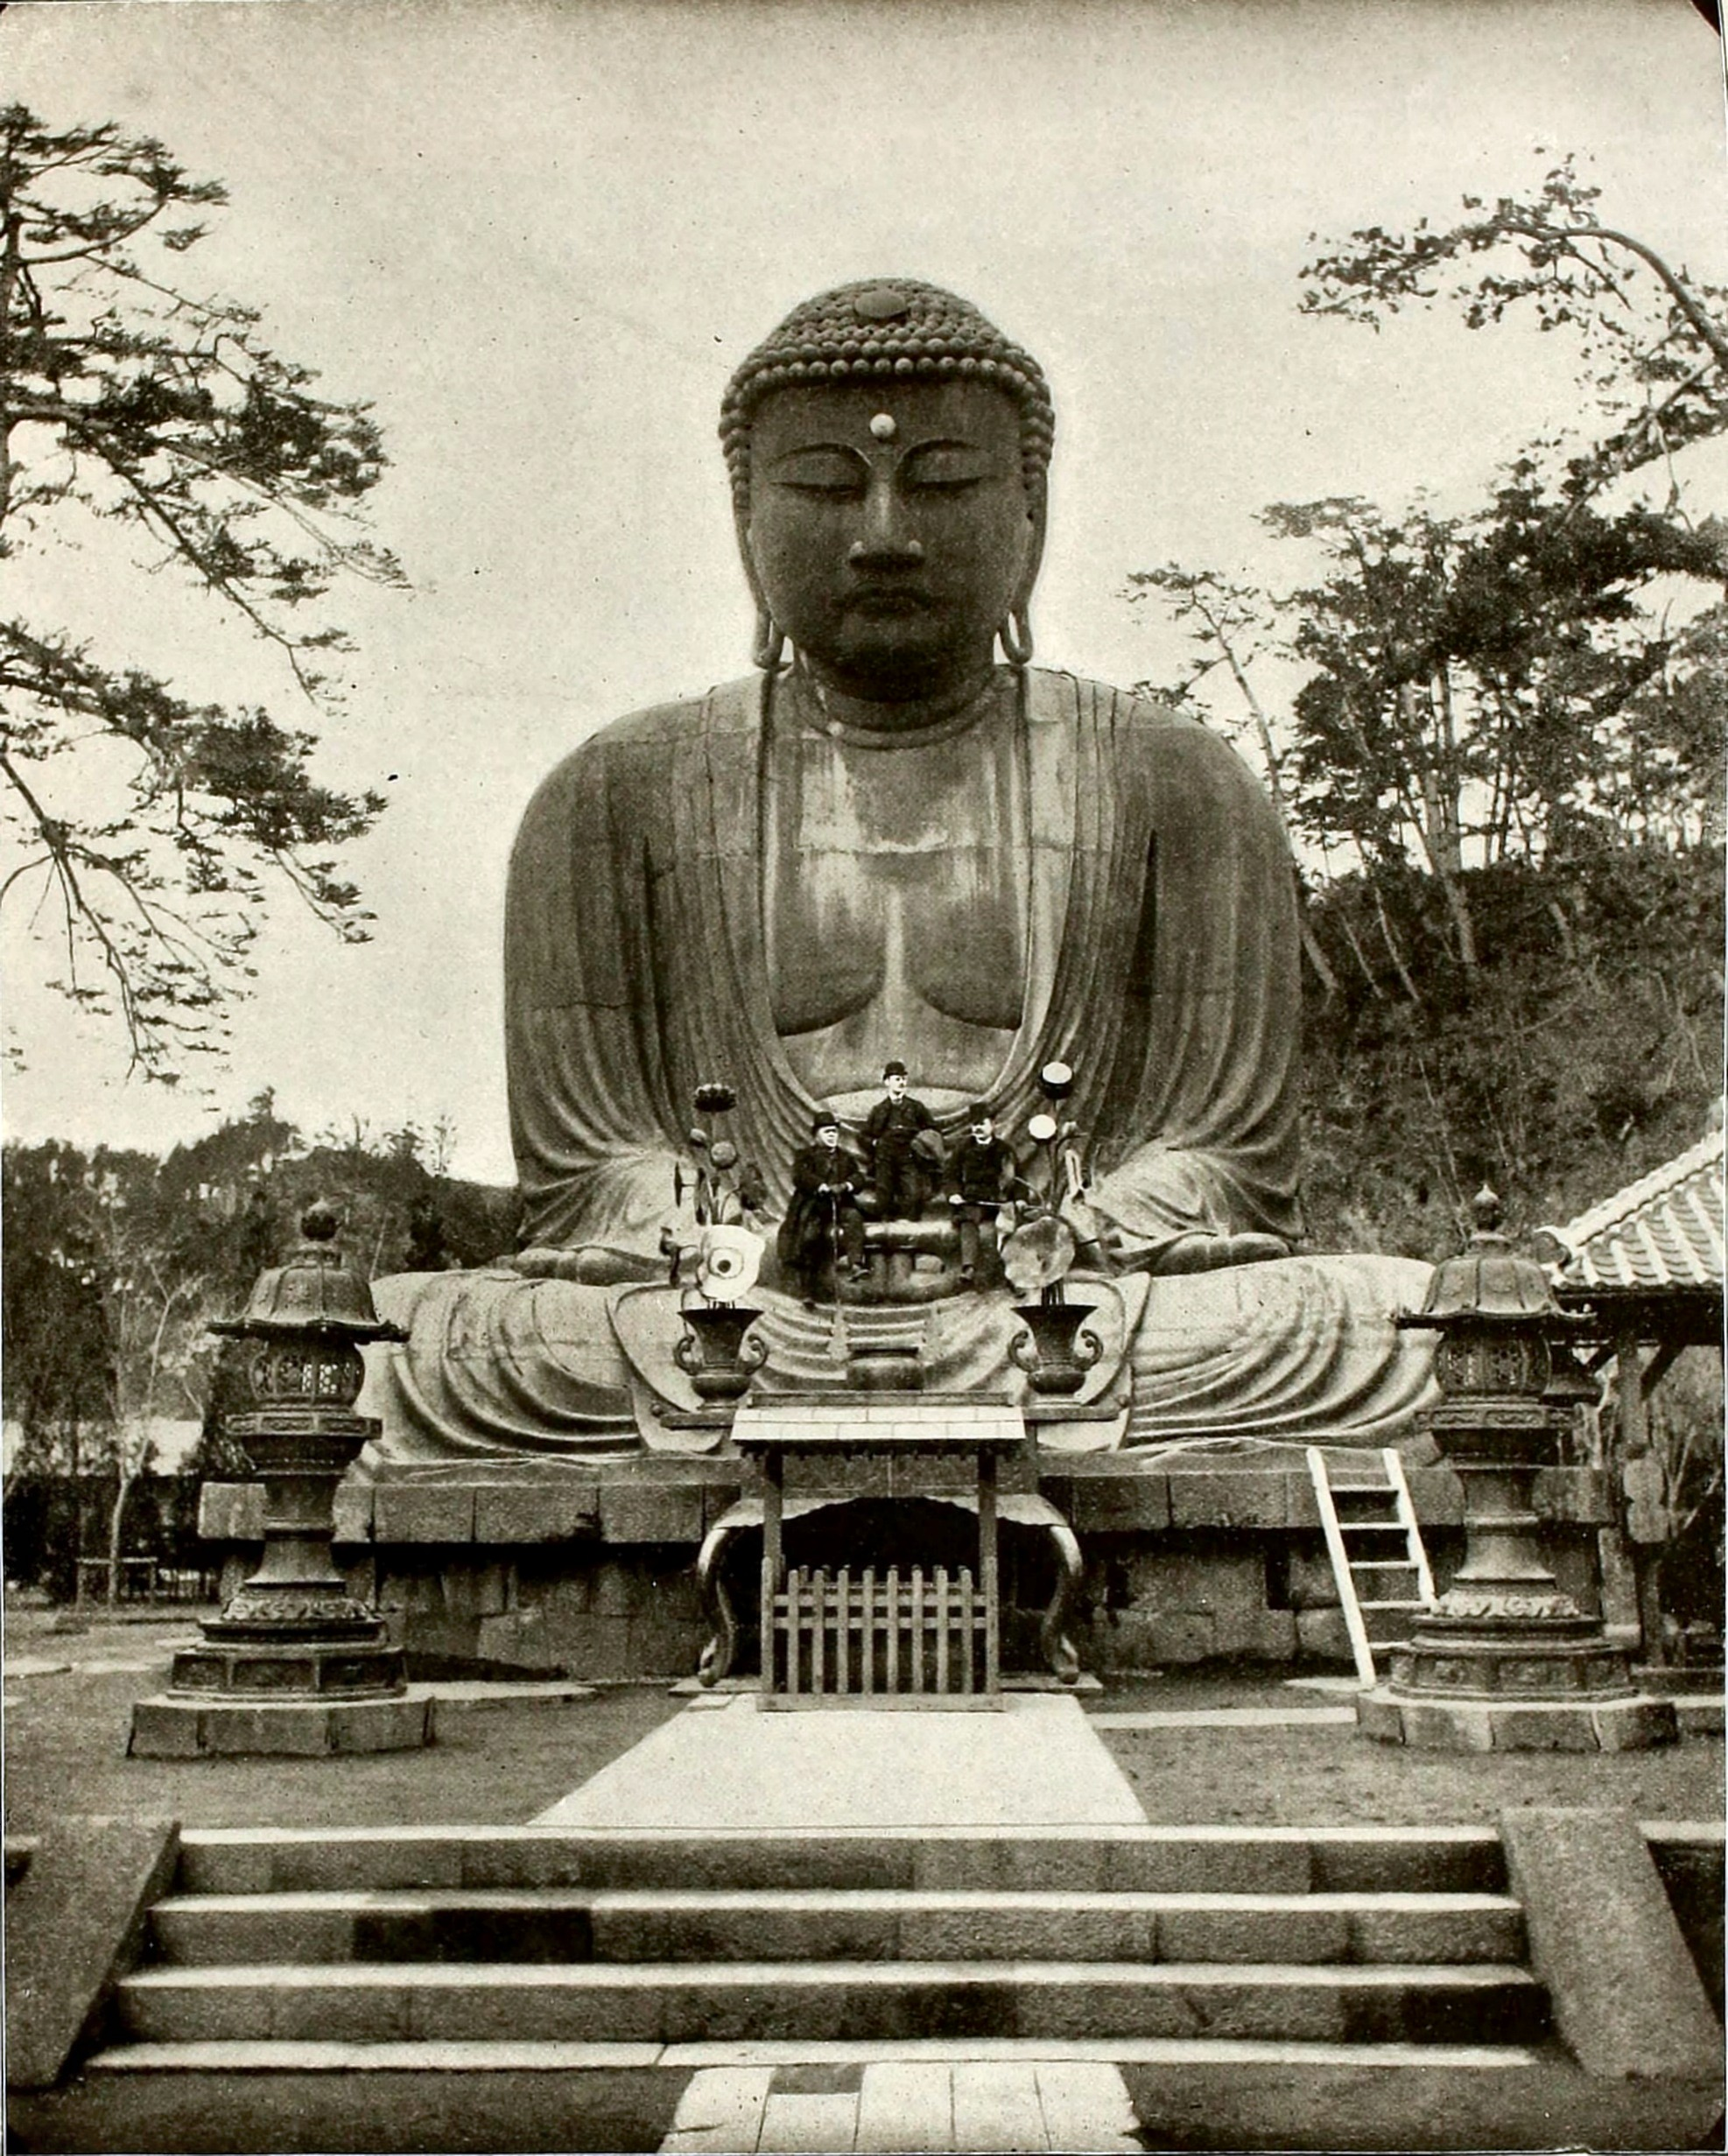 The Great Bronze Buddha in Kamakura Japan about 1892